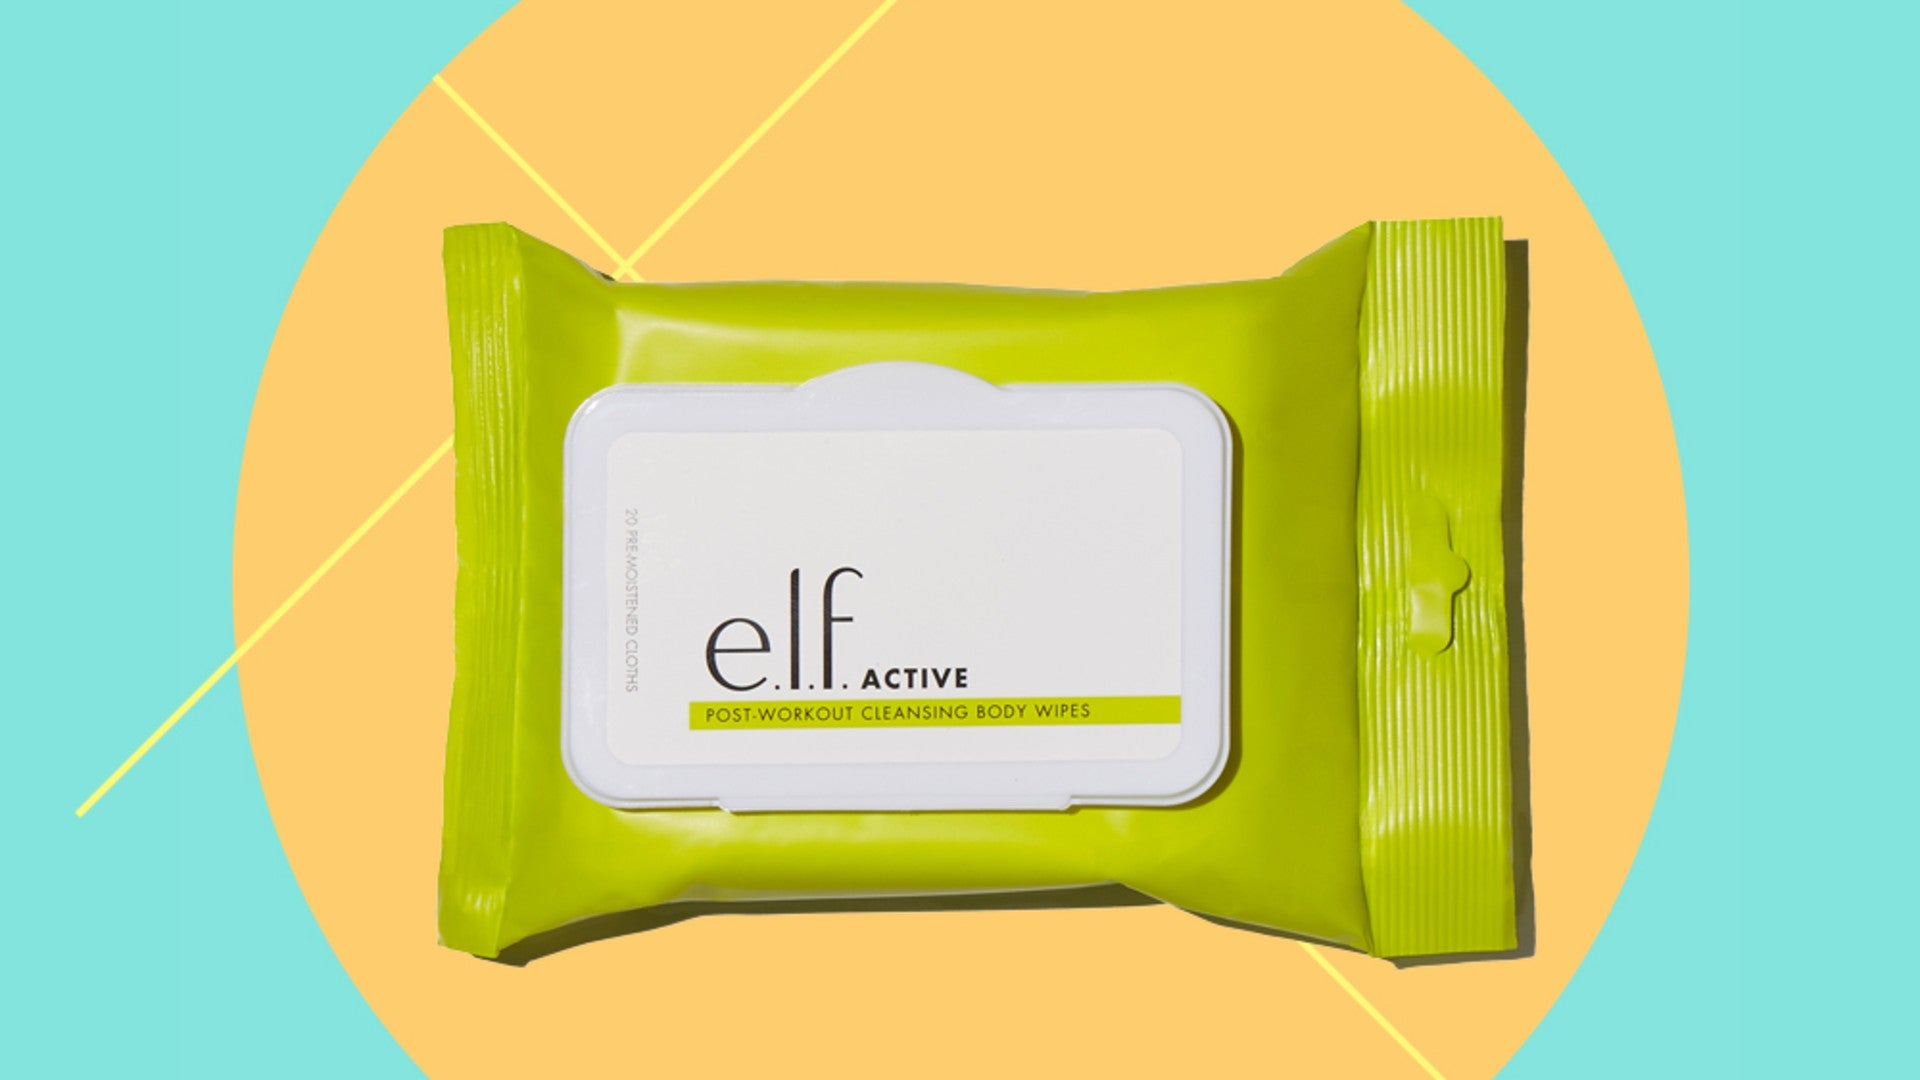 9 Travel-Friendly Beauty Towelettes That Will Leave Your Skin Feeling Fresh and Clean